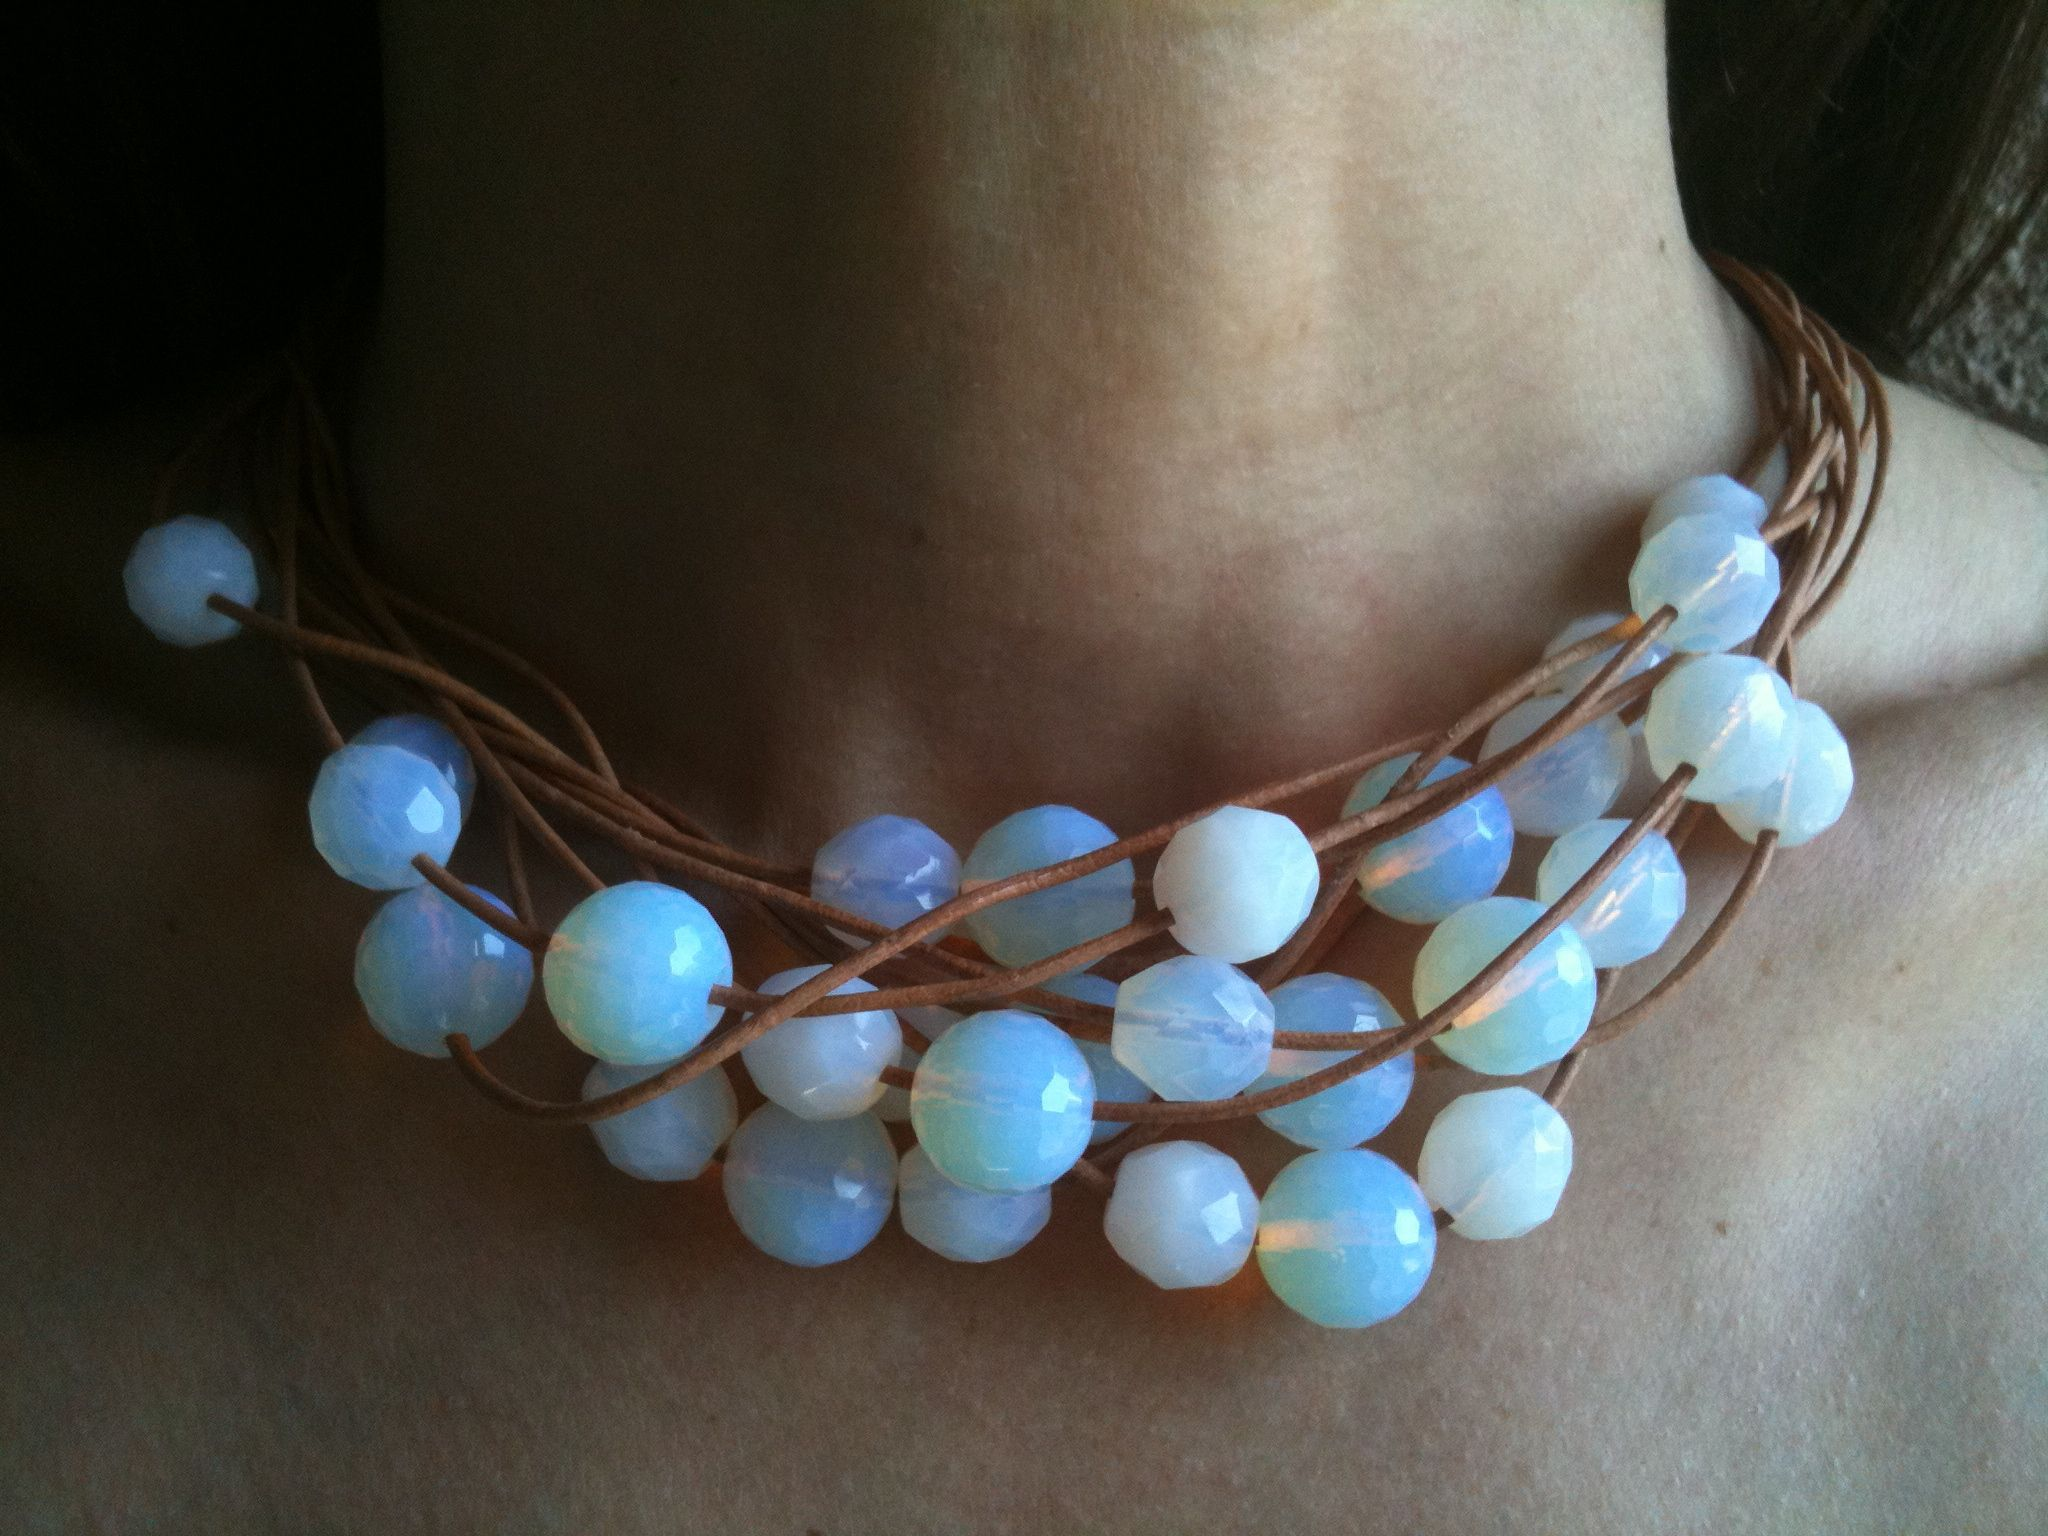 Moonstone baubles on leather cord necklace.